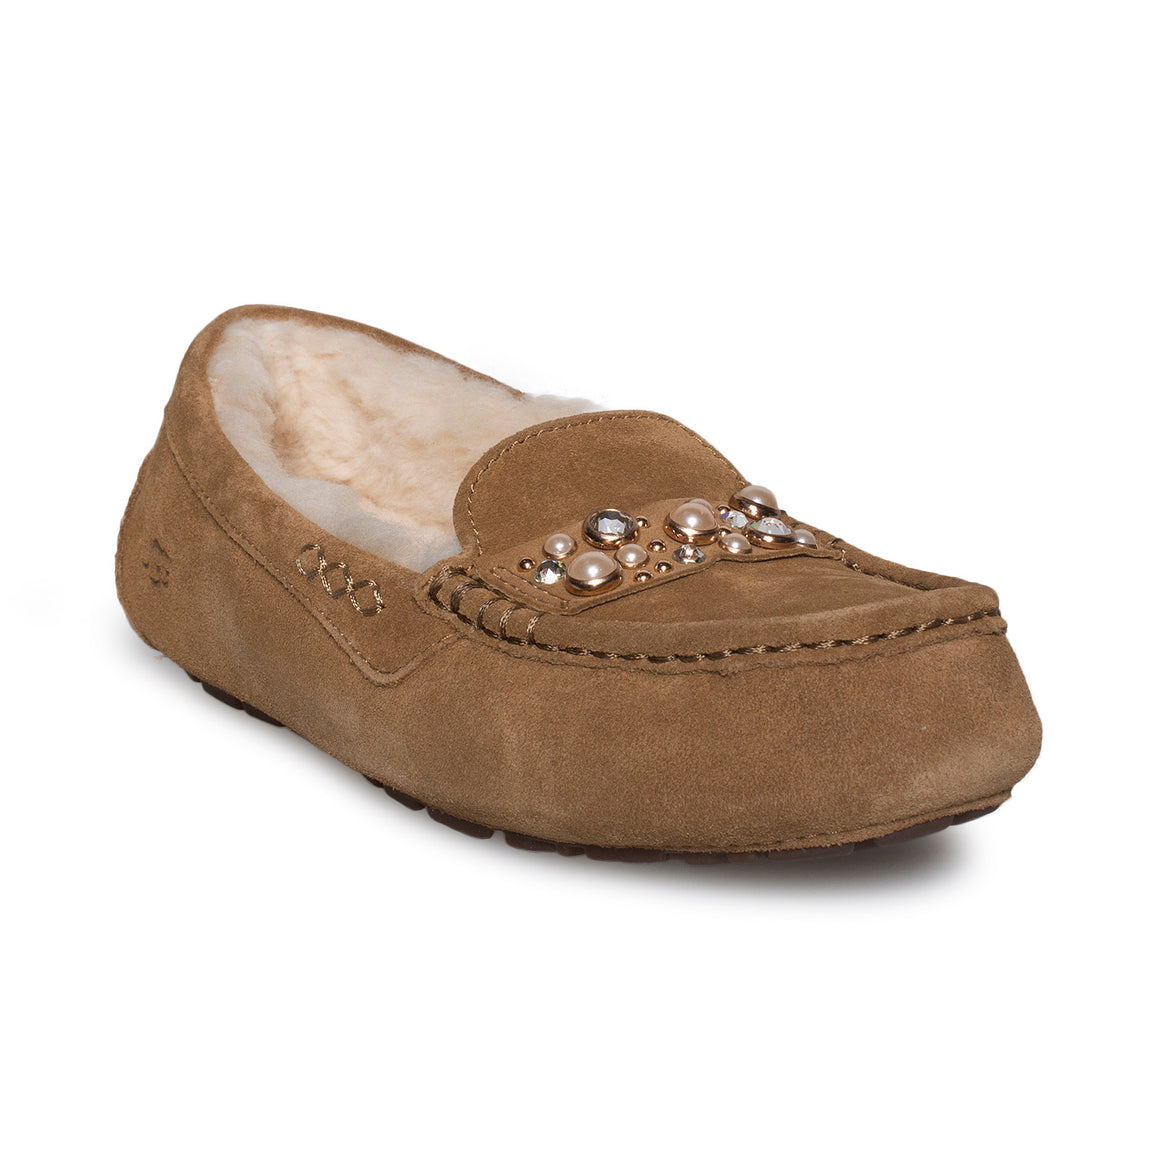 UGG Ansley Bow Brilliant Chestnut Slippers